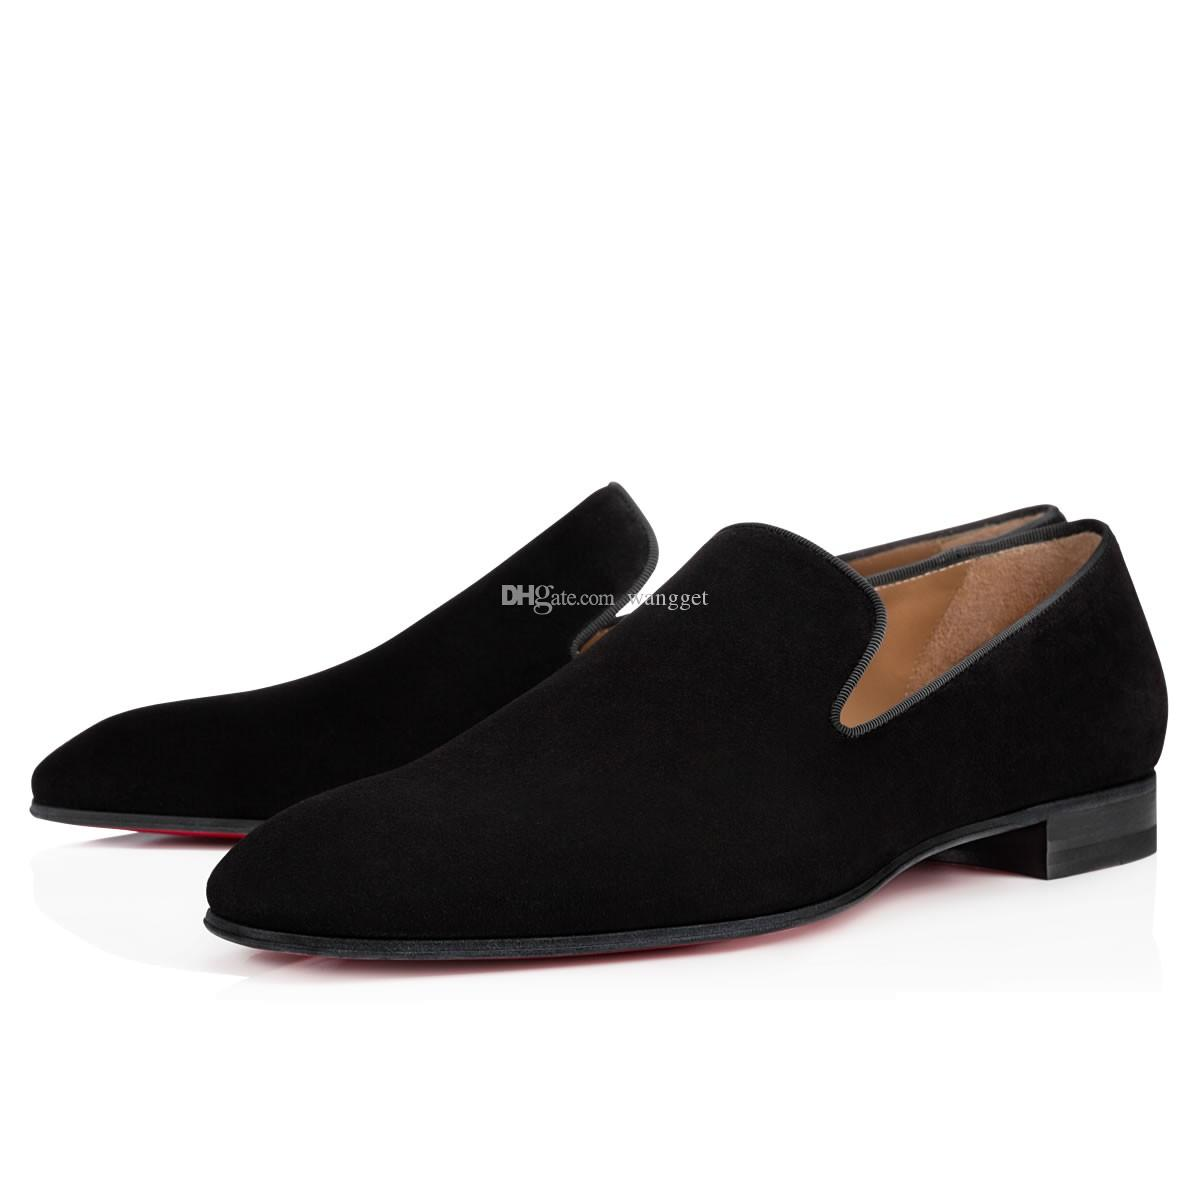 Marca Red Loafers inferior Luxo Wedding Party Shoes Designer PRETO PATENTE camurça Sapatos Para Homens mocassim Flats